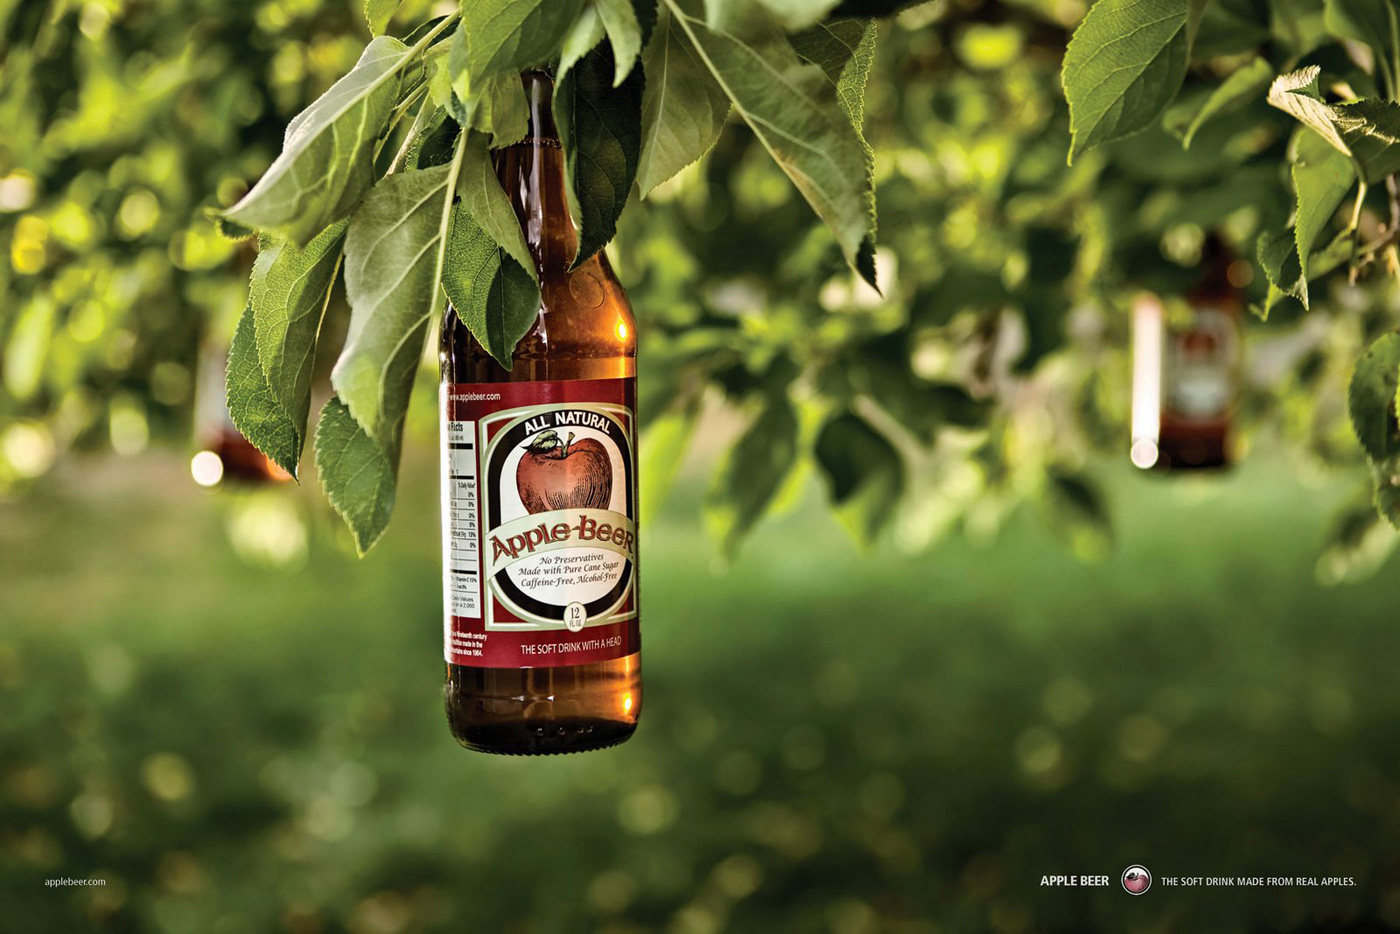 Apple Beer Made from Real Apples - 335.0KB